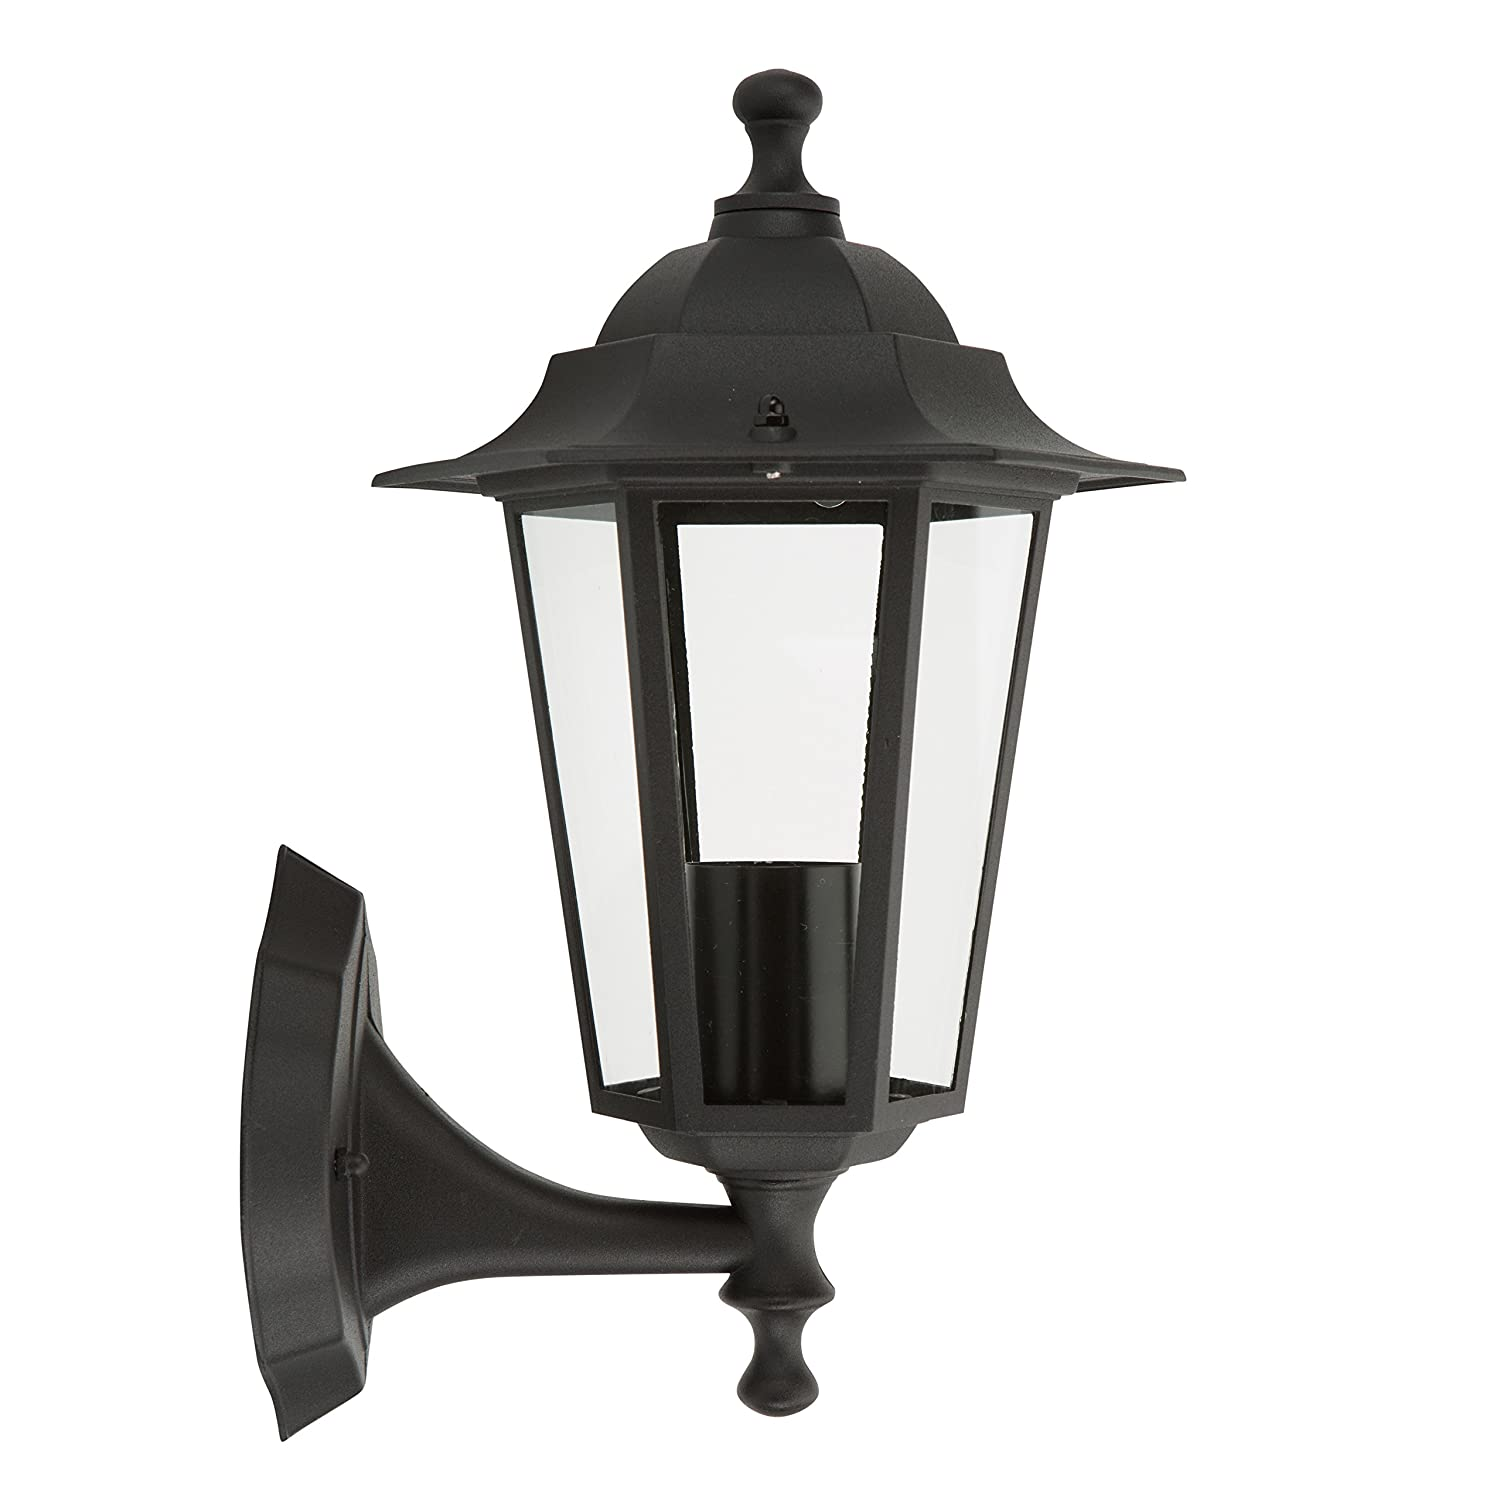 Outdoor Wall Light 60 W Black Ranex GmbH 5000.030